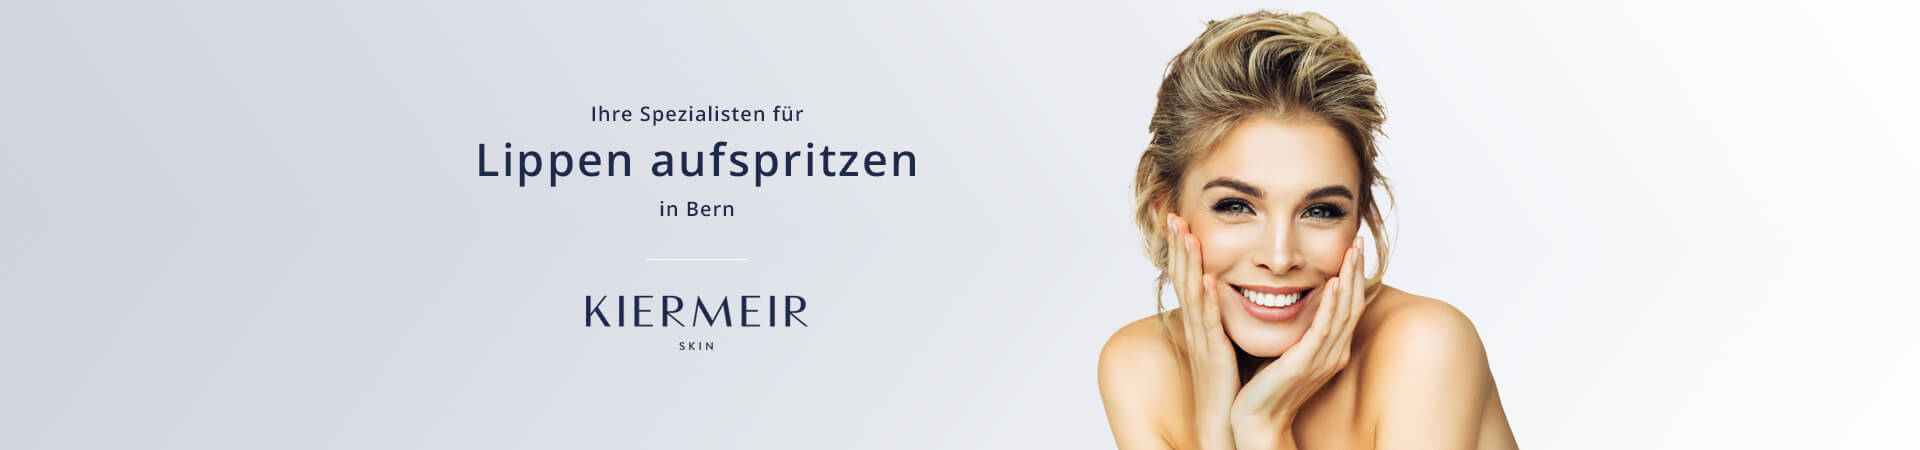 Lippen aufspritzen in Bern - Dr. Kiermeir